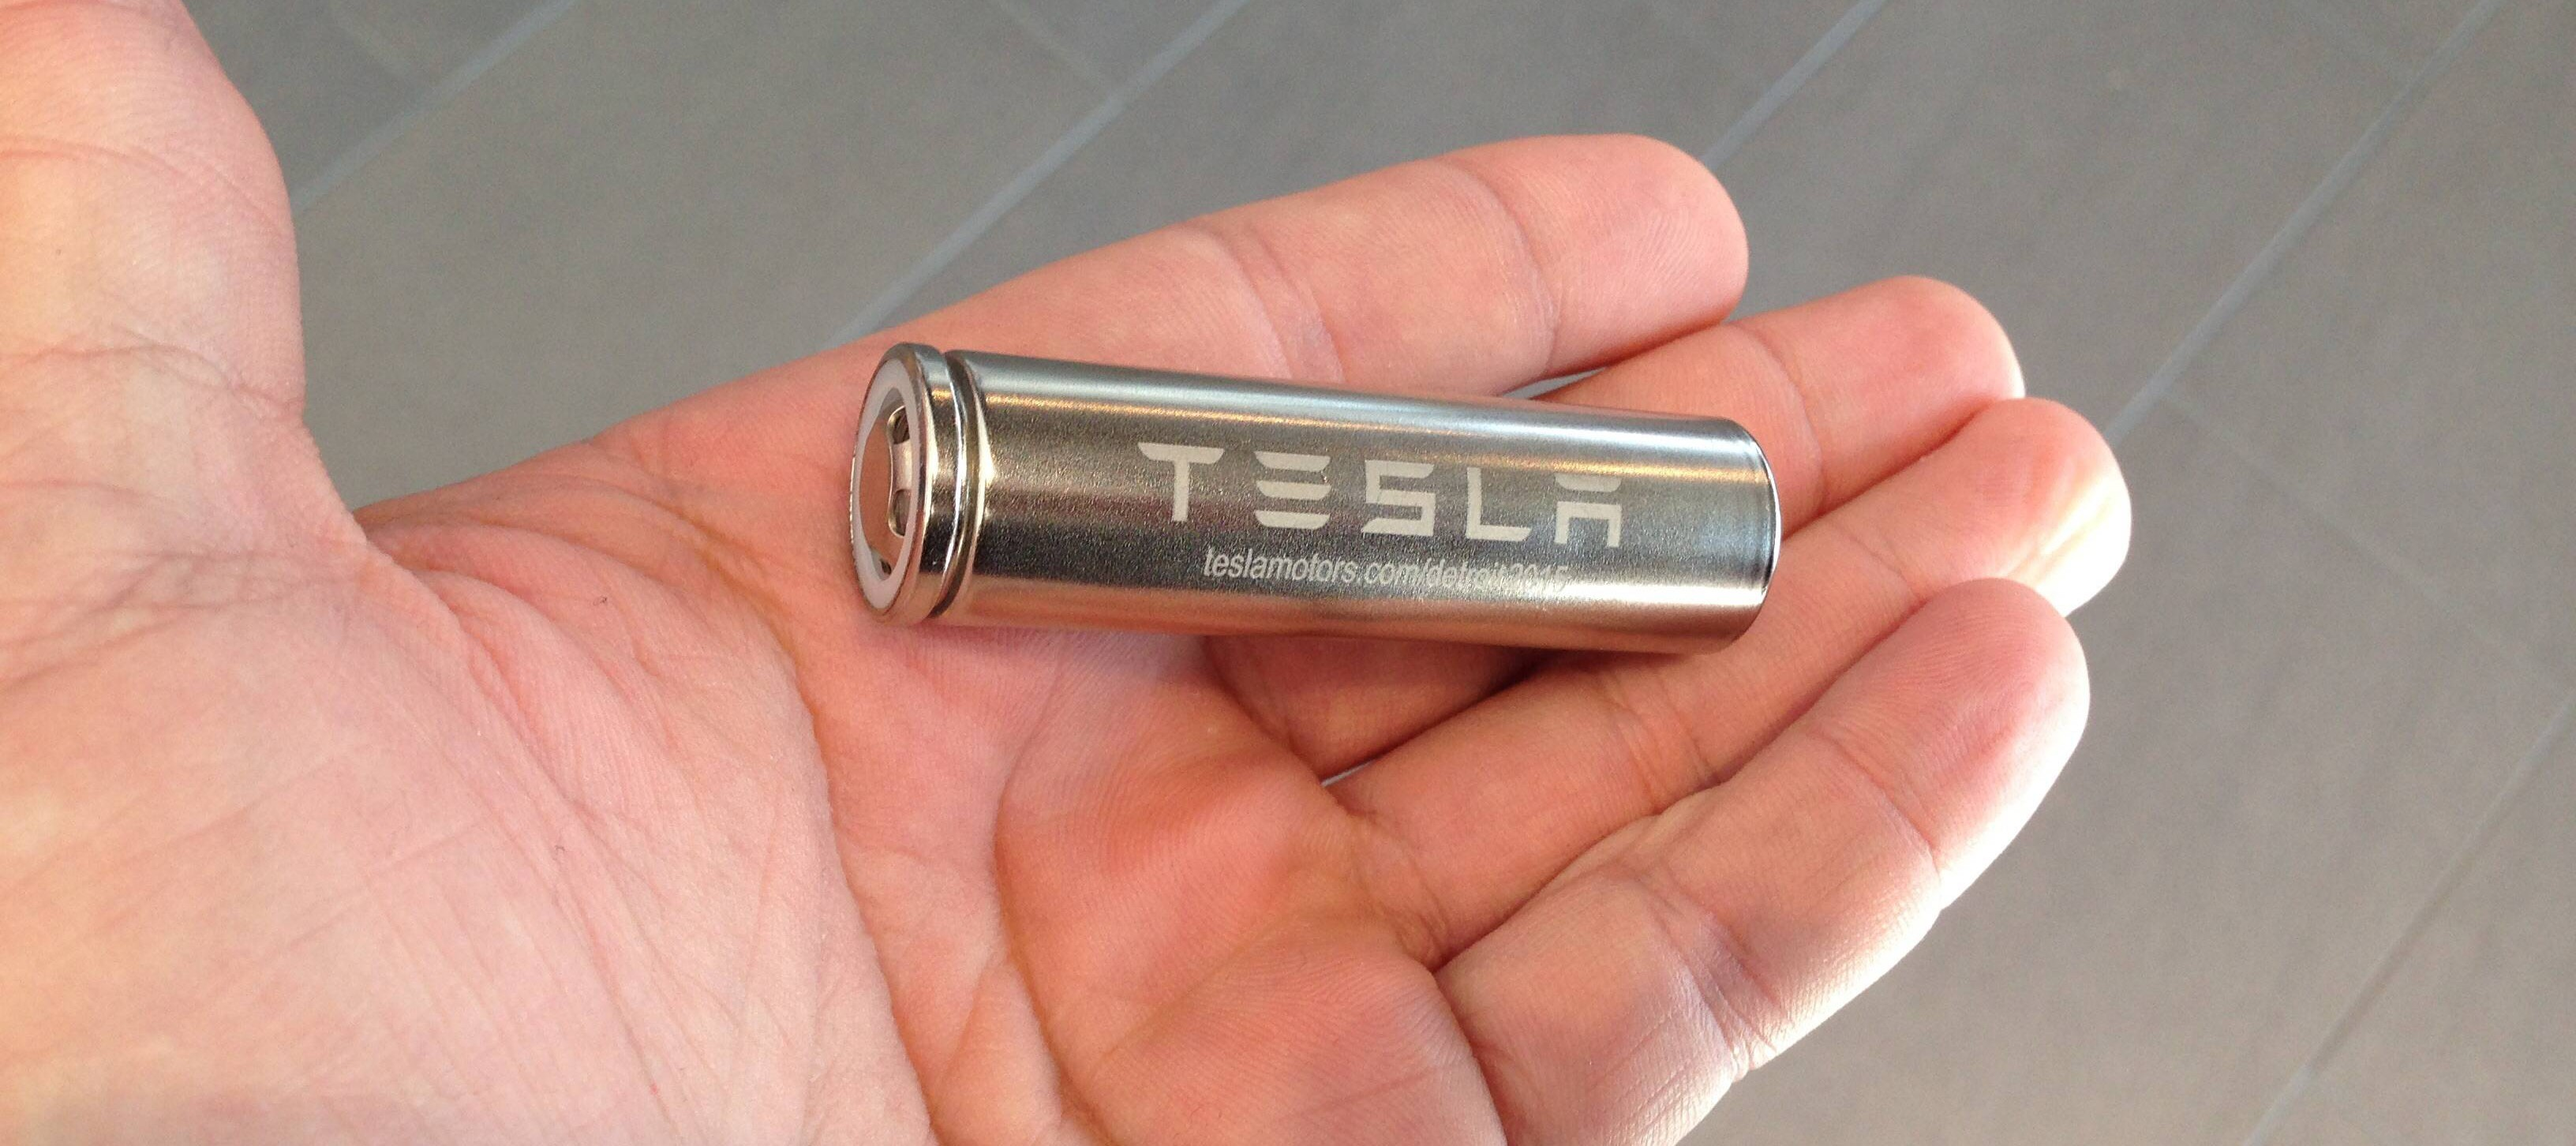 Tesla battery researcher unveils new cell that could last 1 million miles in 'robot taxis' - Electrek